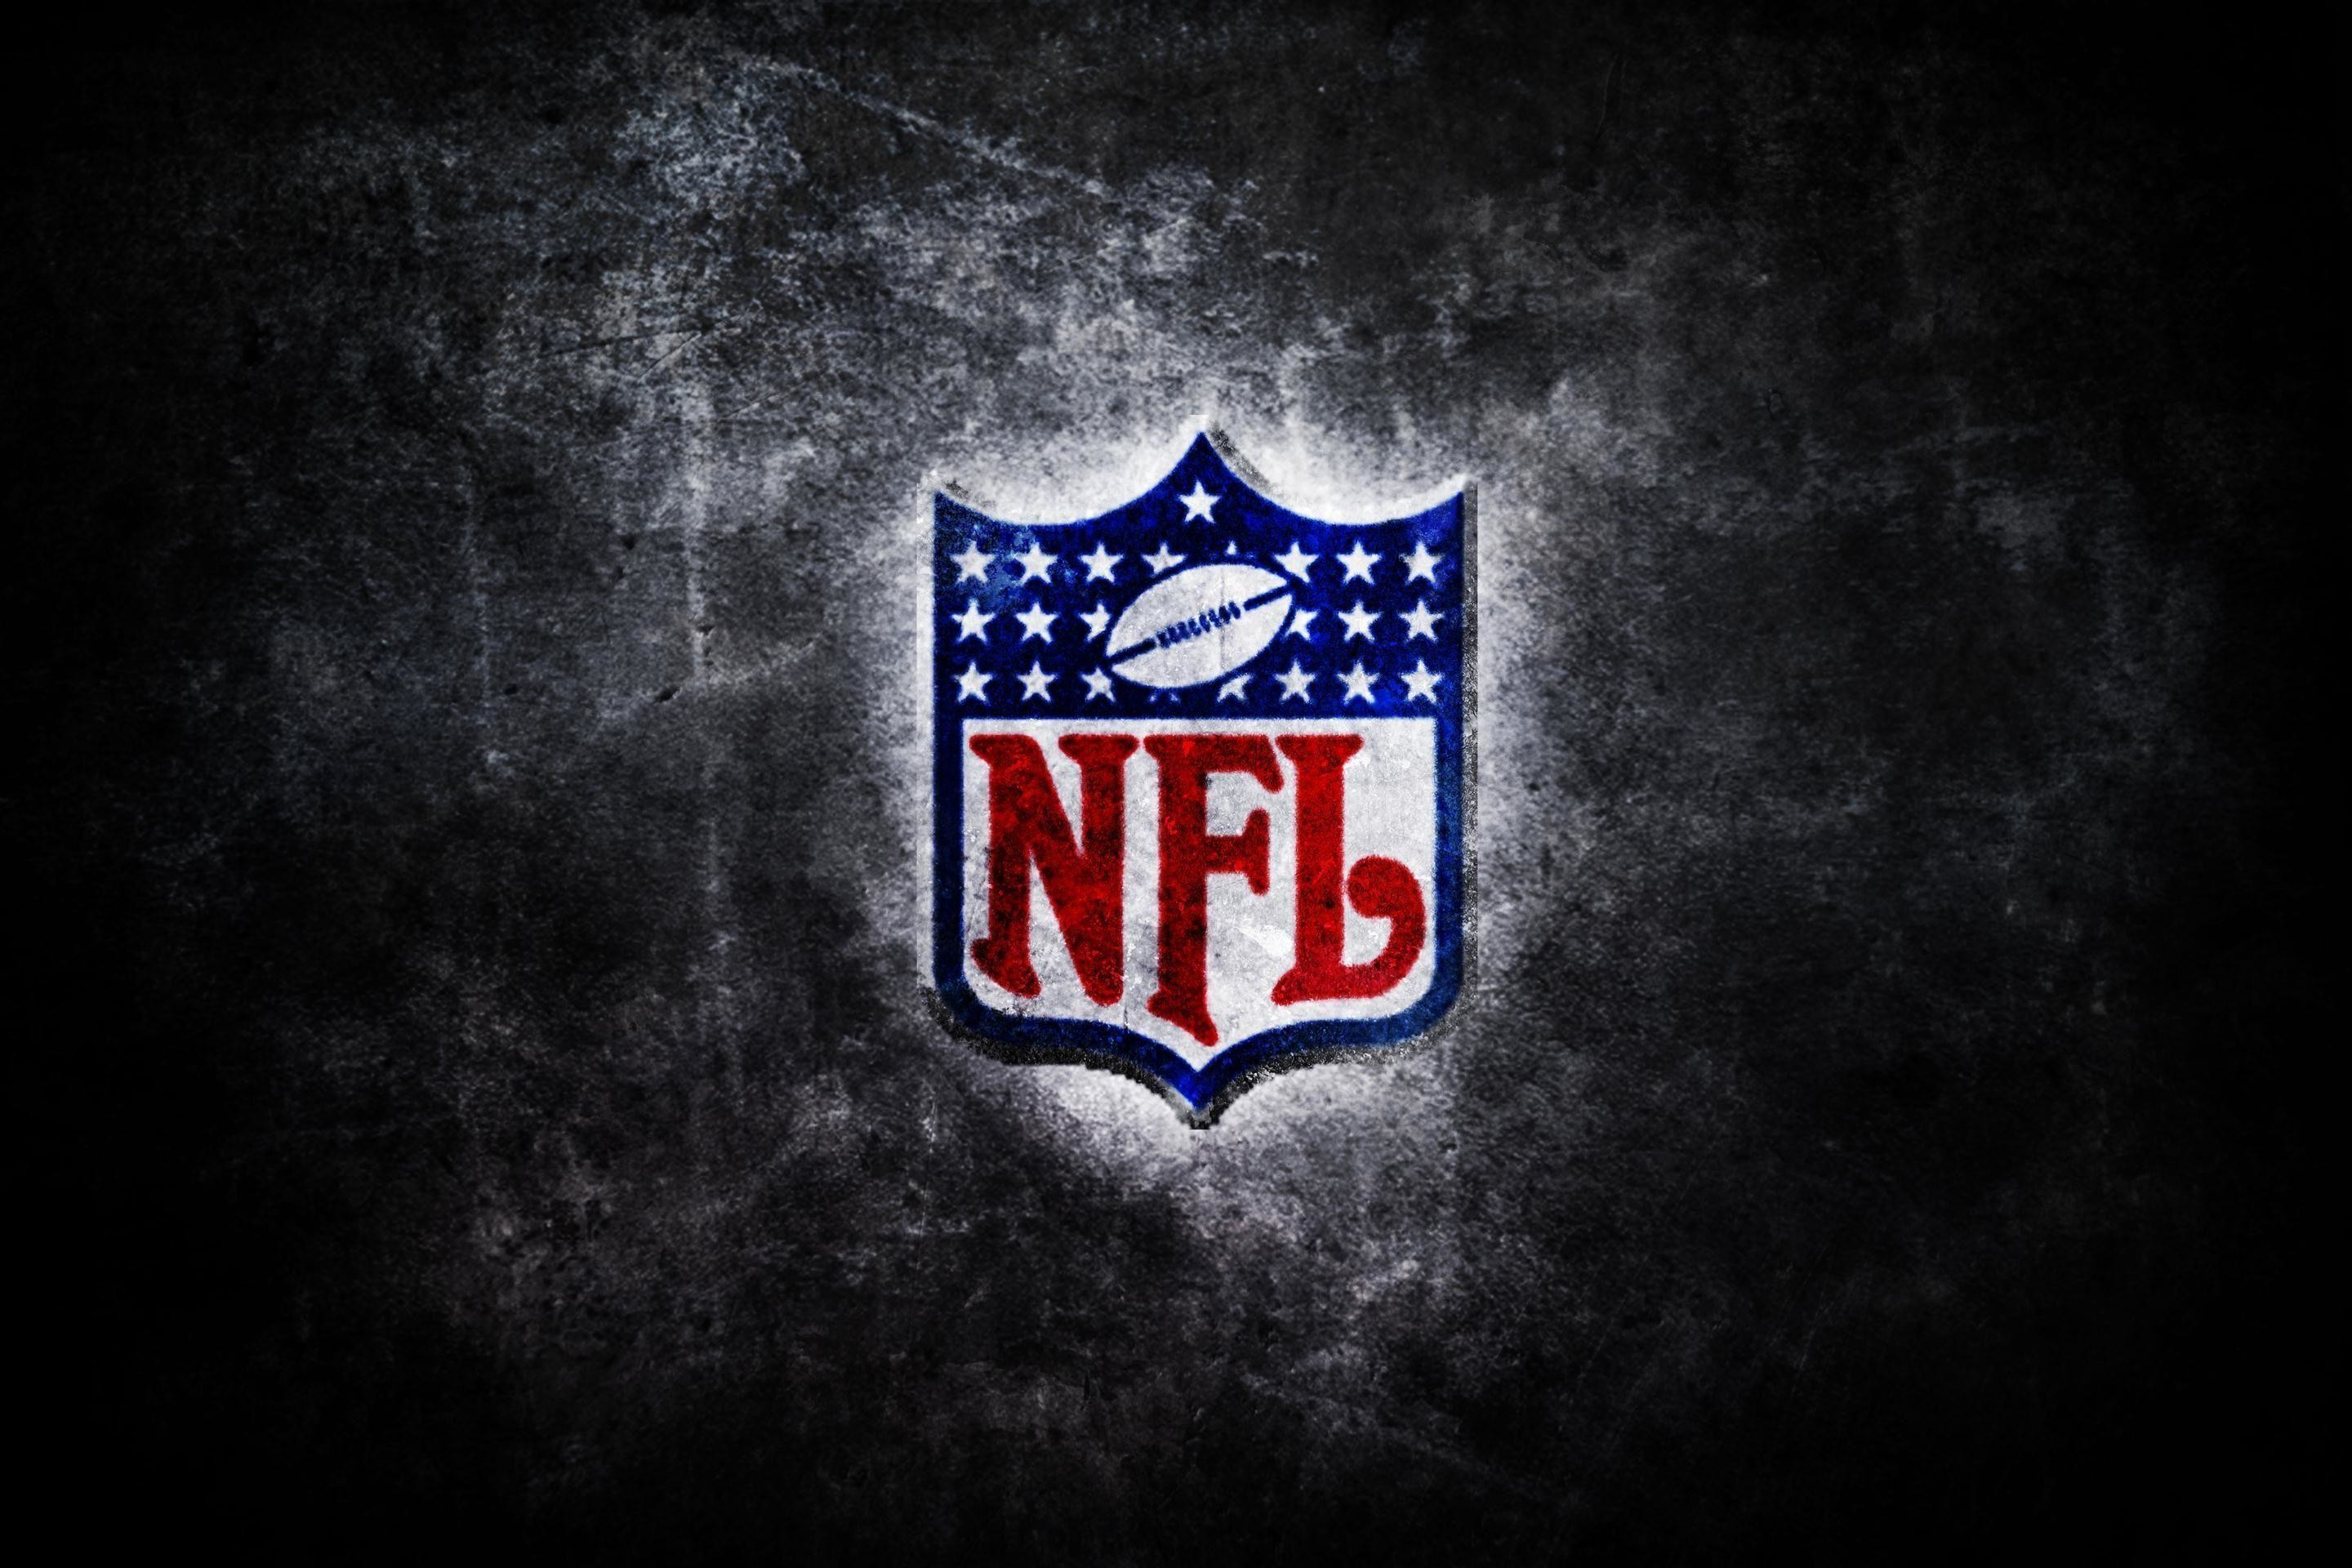 2880x1920 New NFL National Football League Cool Logo Wallpaper HD for .